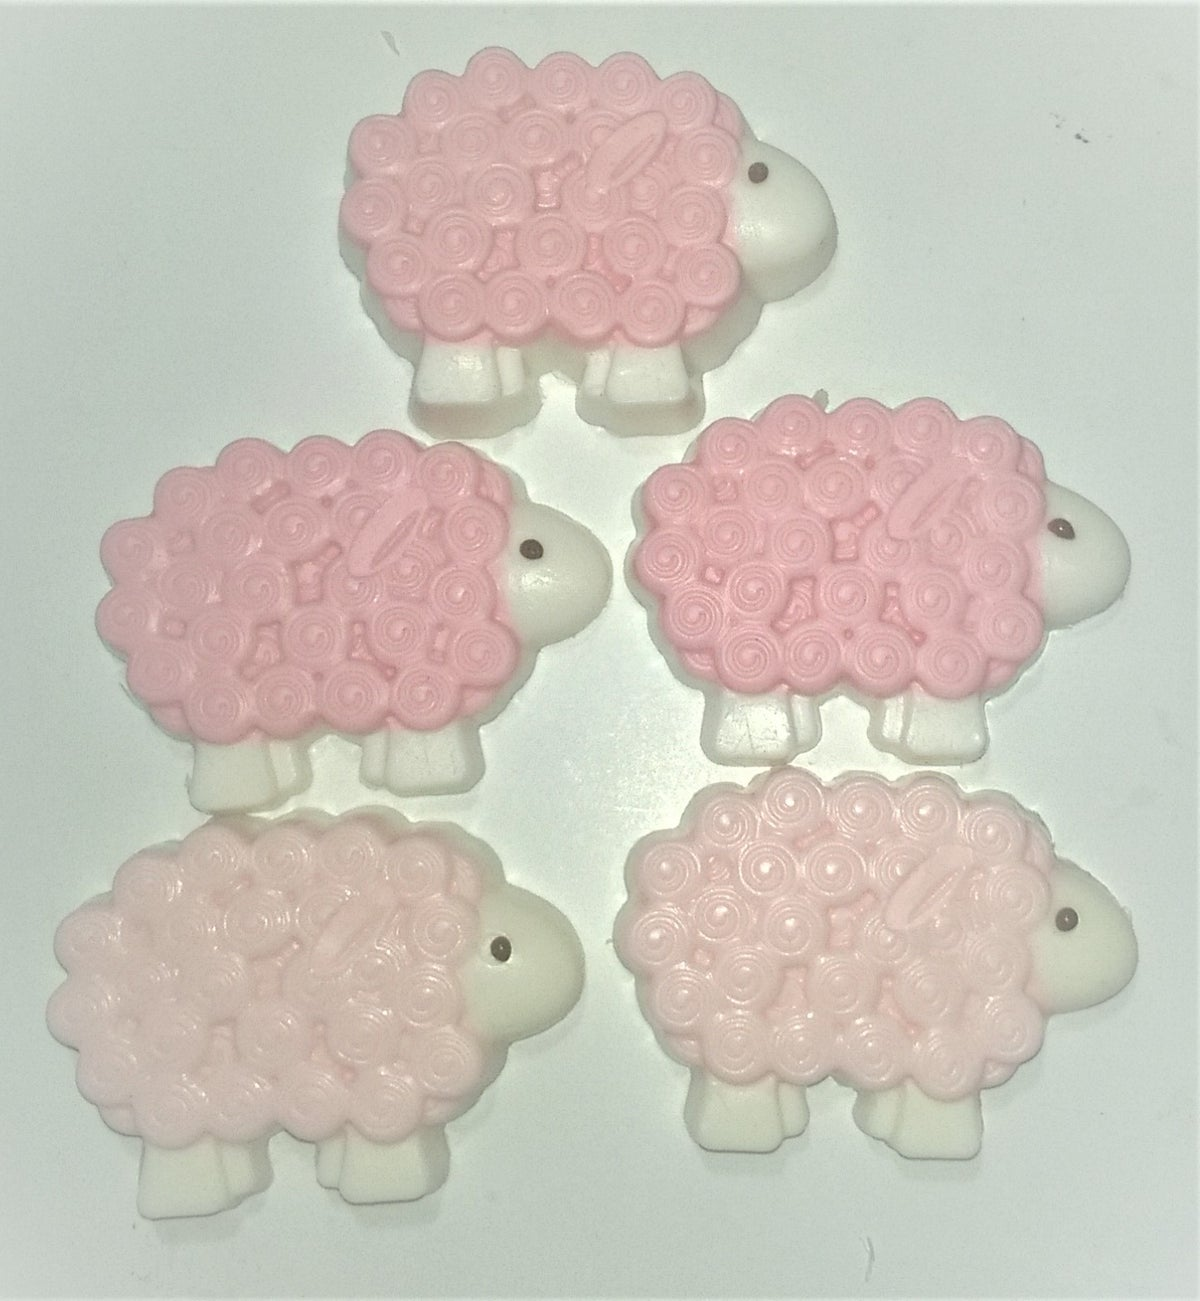 Image of The Little Goats Milk Sheep Soap Scented with Sweet Pea.